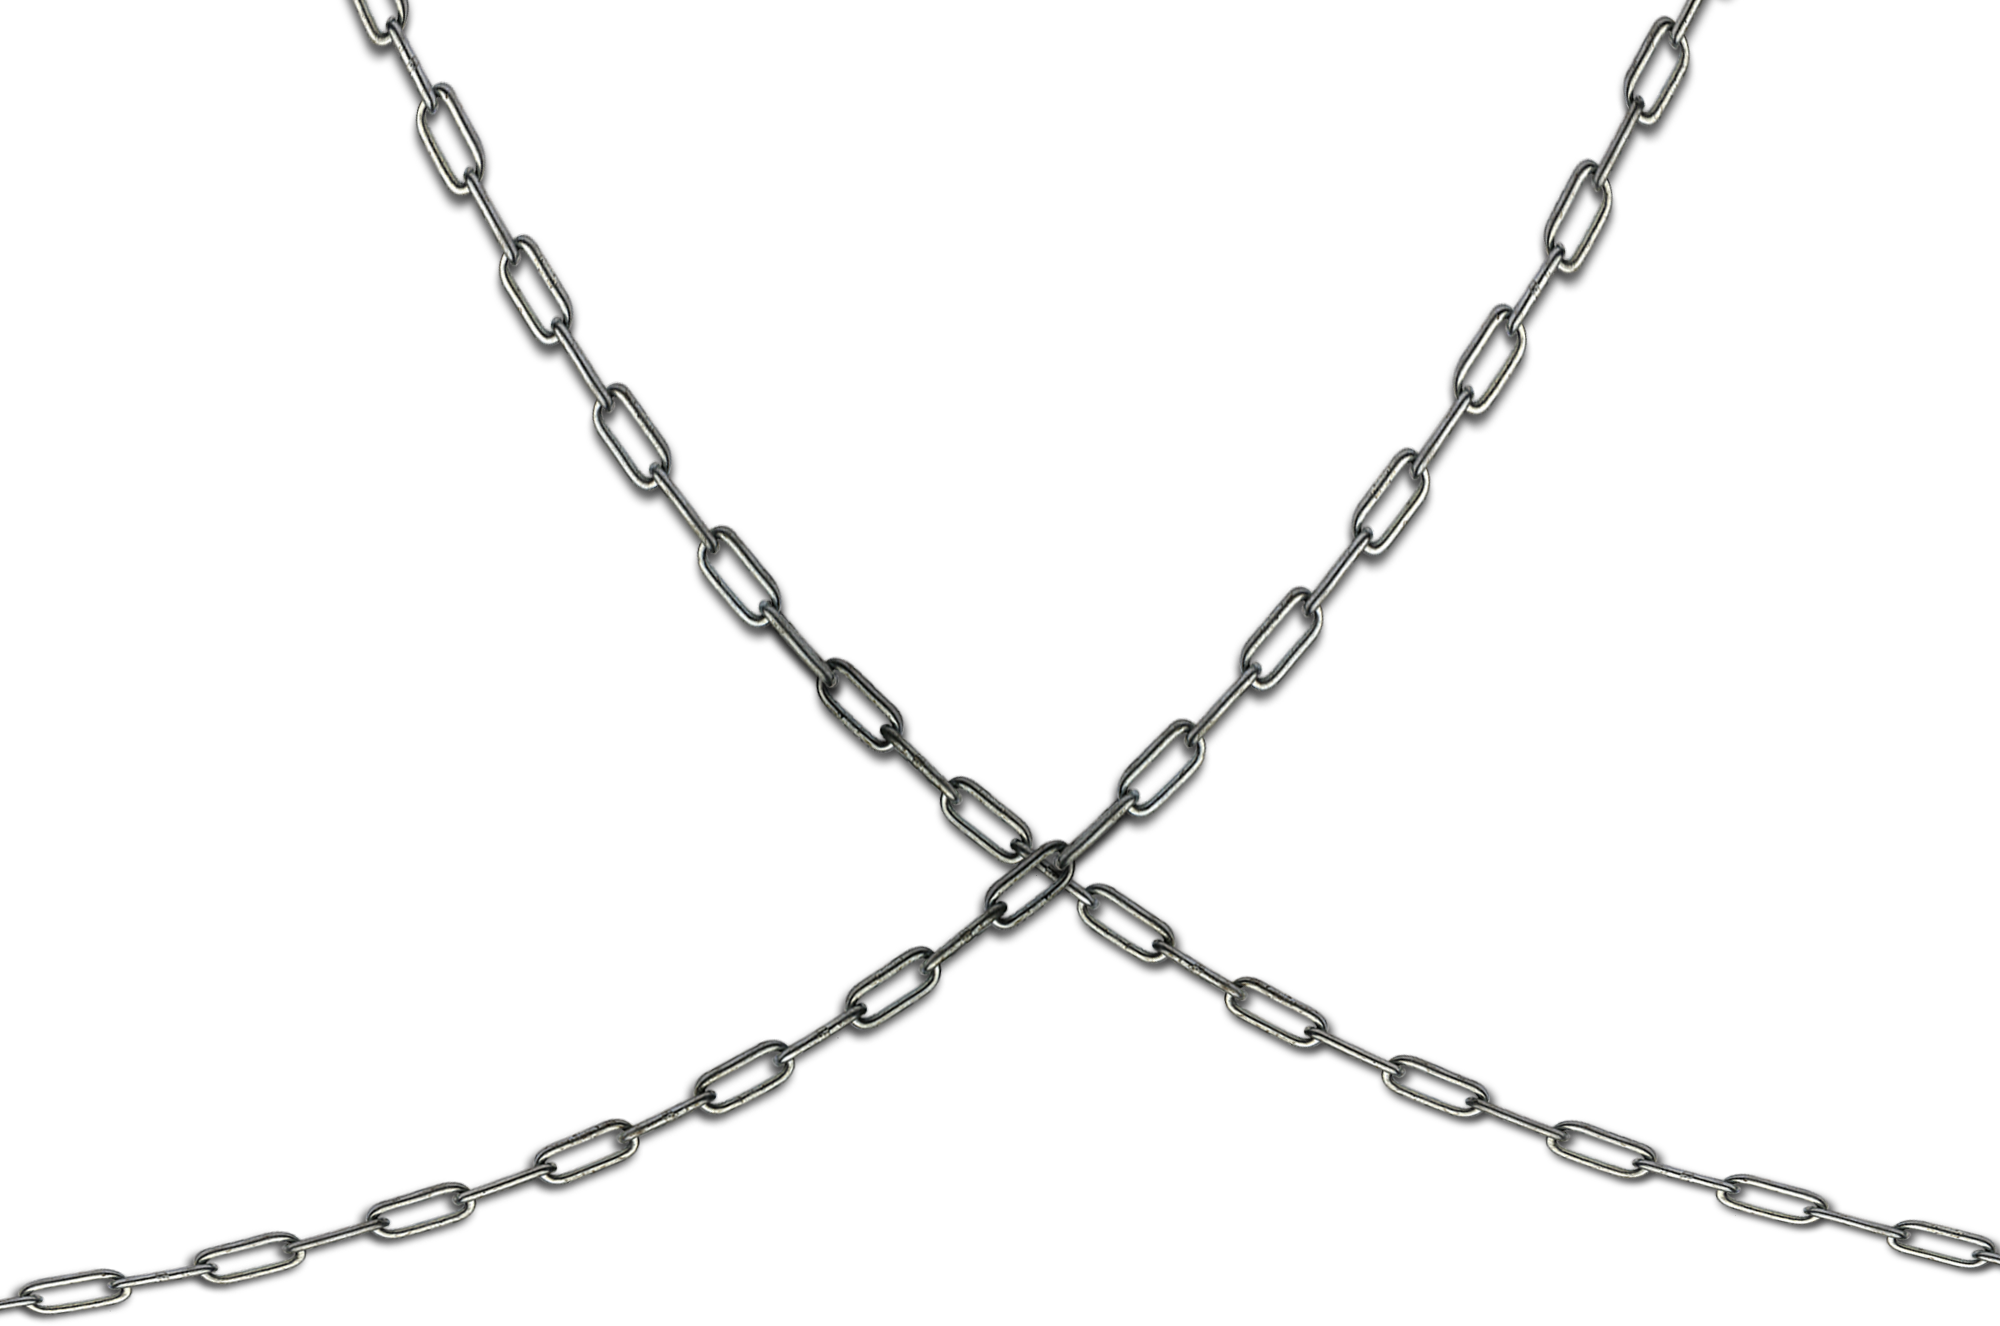 Chain PNG - 2181